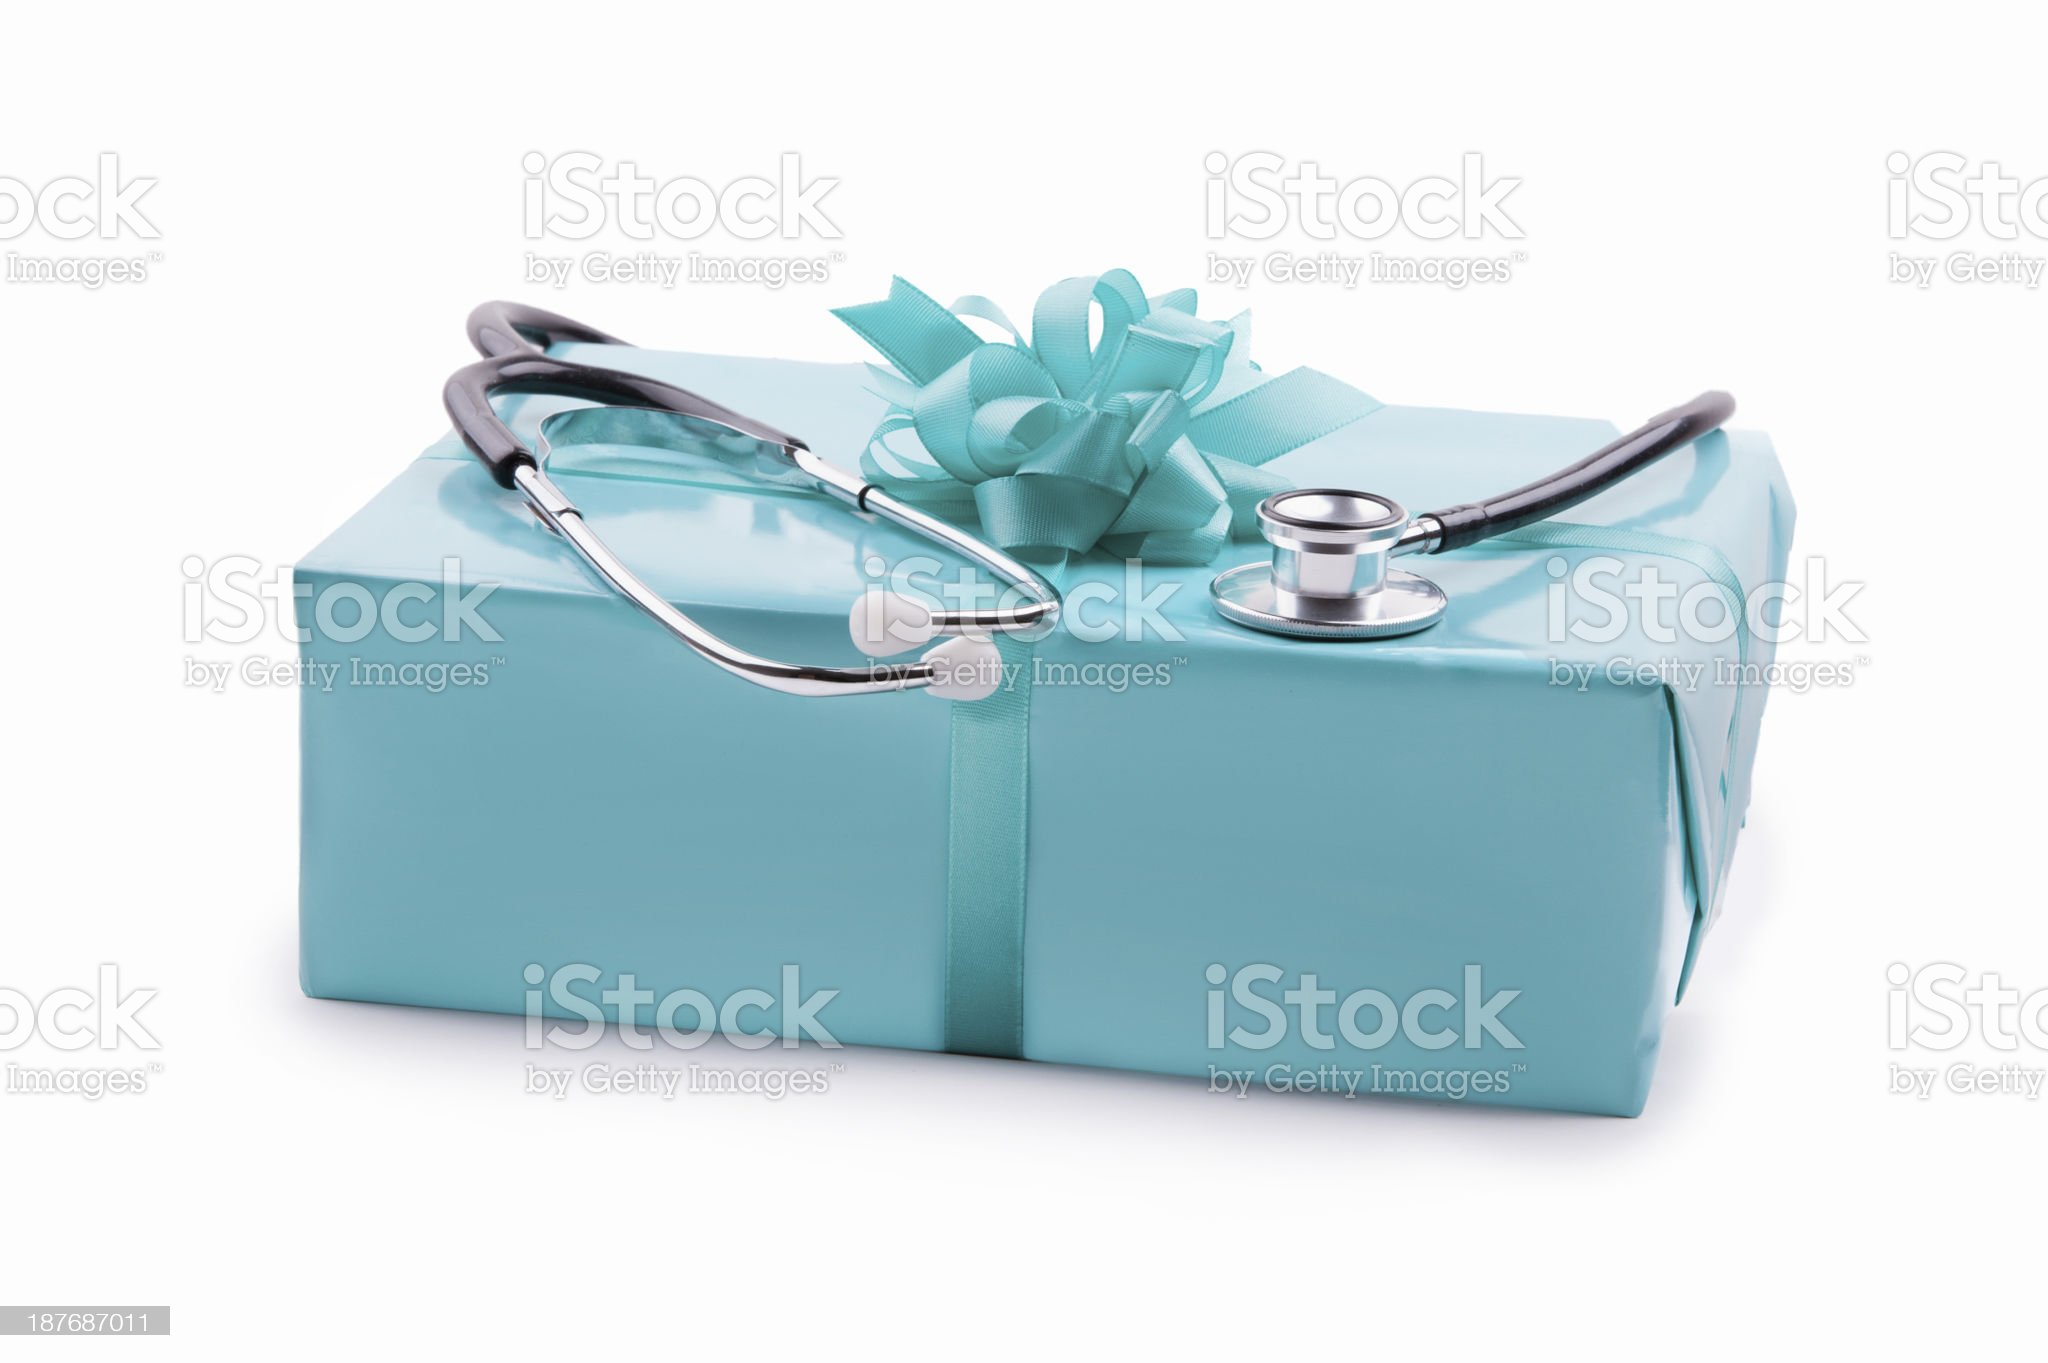 Stethoskop on a turquoise gift box on white royalty-free stock photo